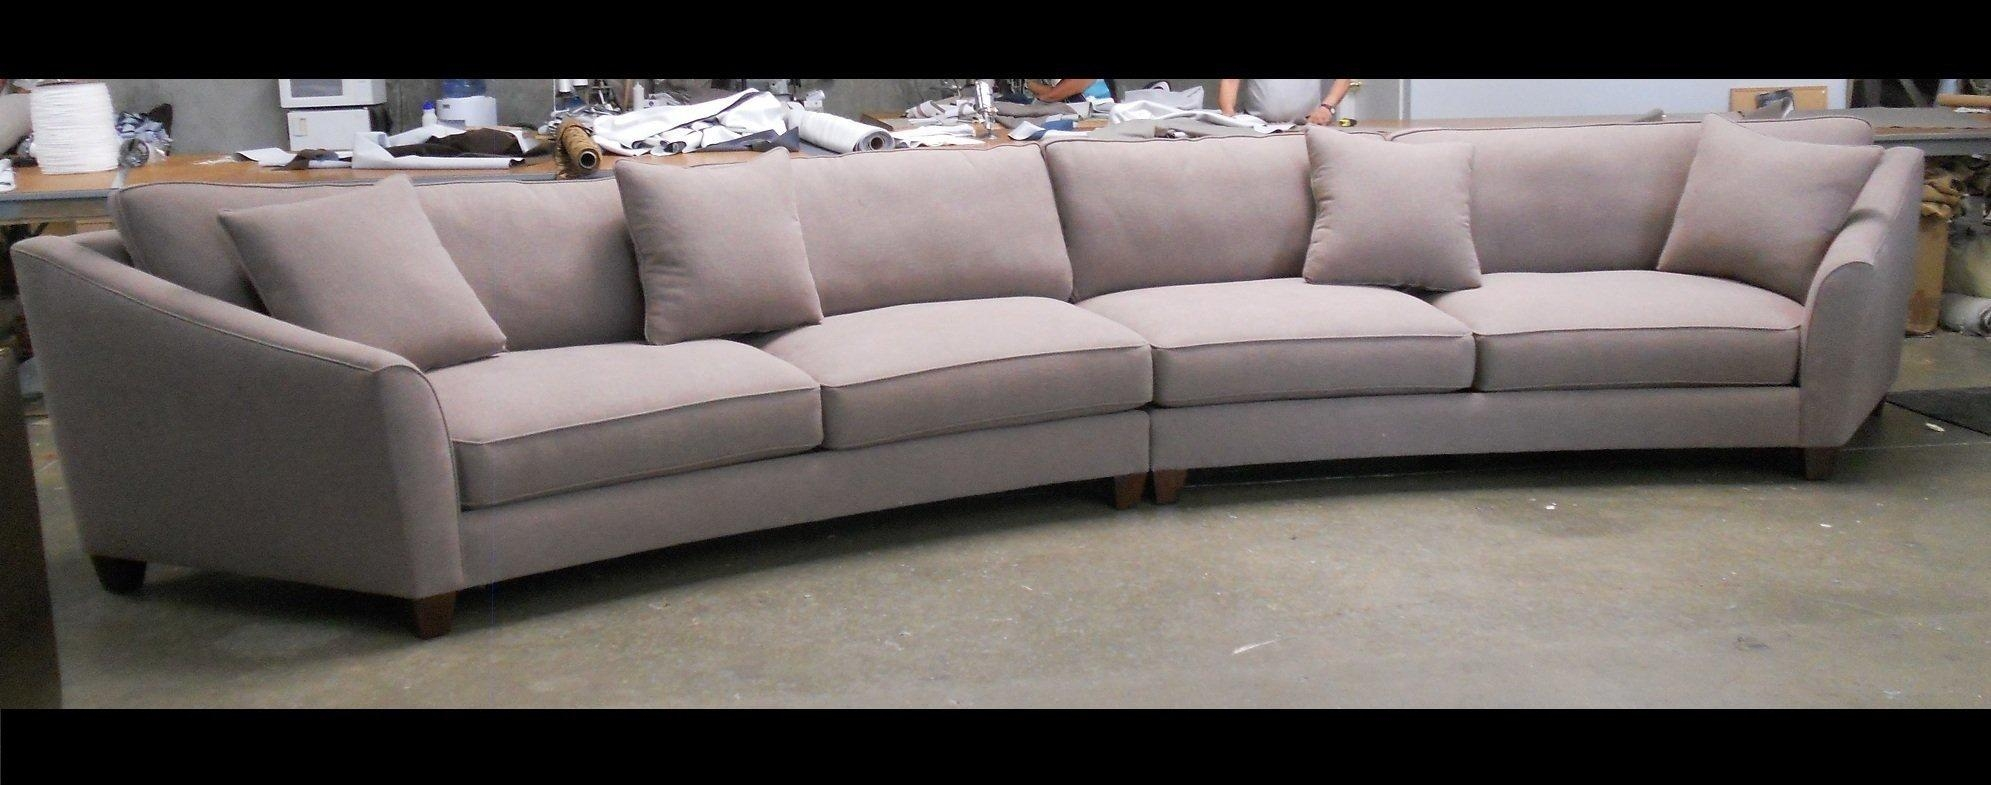 Curved Sectional Sofa Set – Rich Comfortable Upholstered Fabric With Regard To Large Comfortable Sectional Sofas (View 19 of 20)